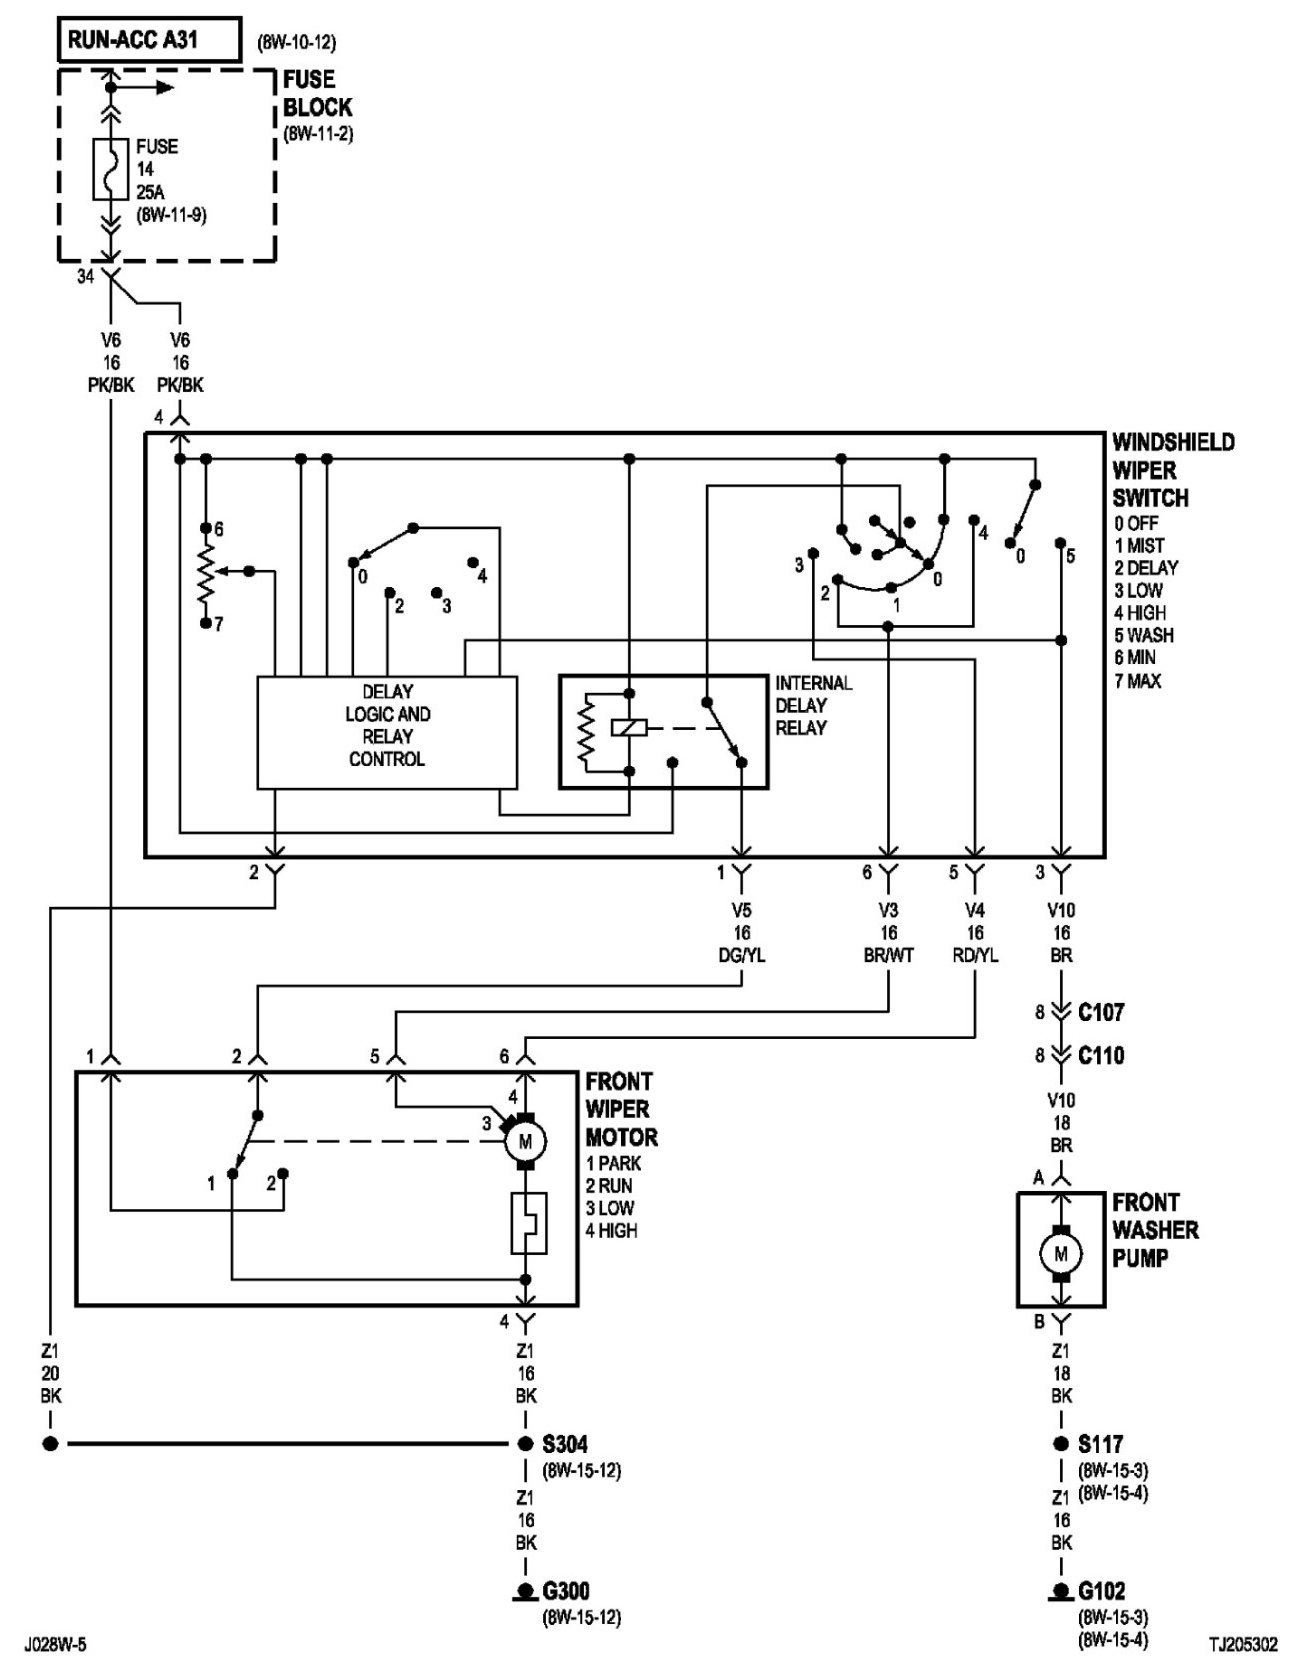 2010 11 29_192654_wiper_0000 2002 jeep wrangler radio wiring diagram schematics and wiring 2002 jeep wrangler radio wiring diagram at n-0.co